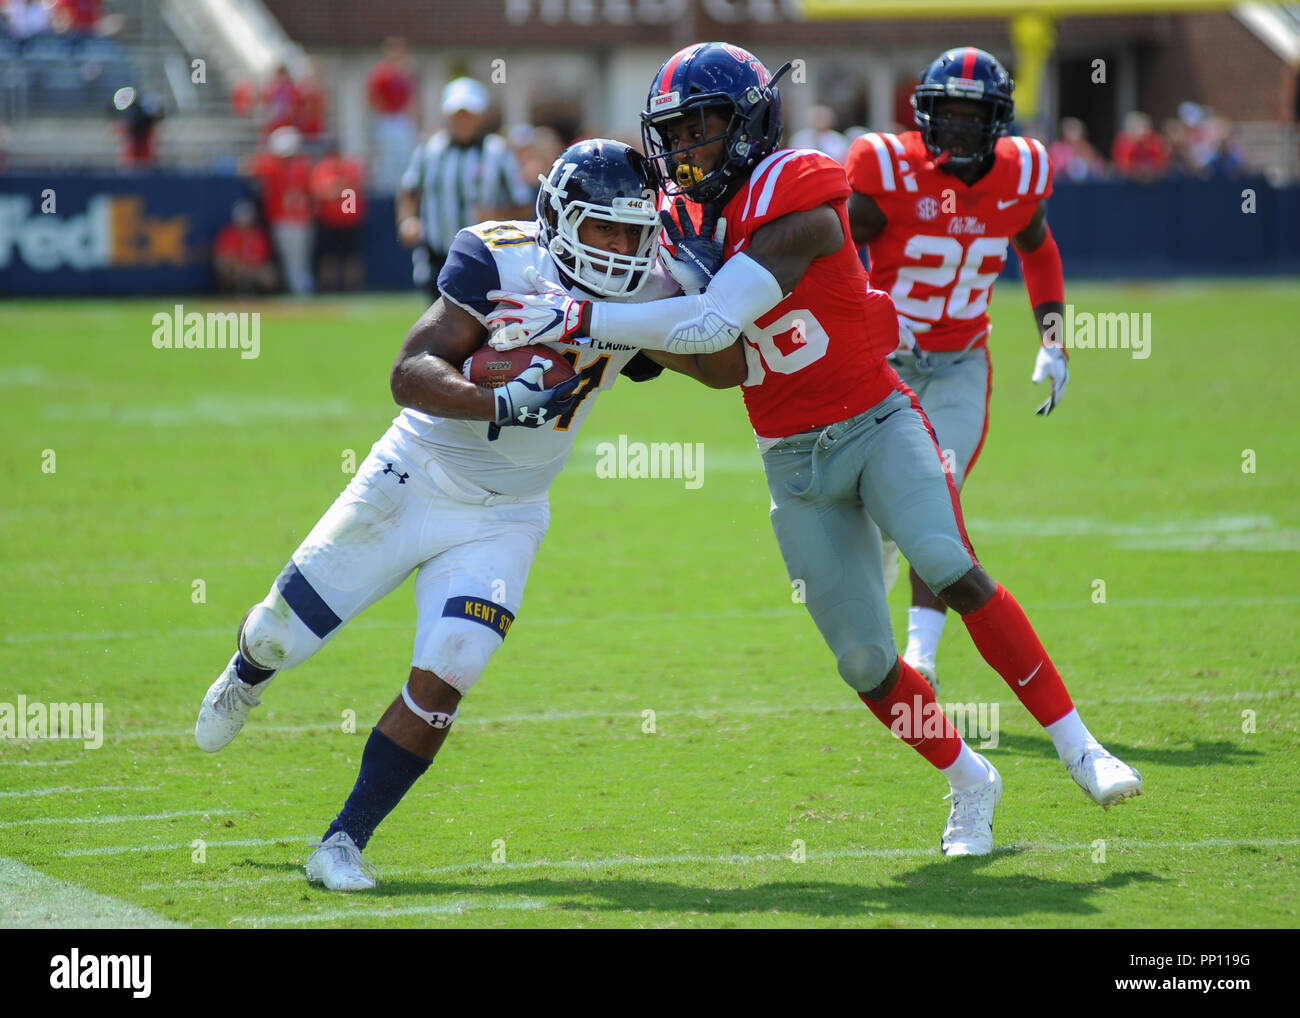 new arrival e57c8 98816 Oxford, MS, USA. 22nd Sep, 2018. Kent State RB, Justin ...